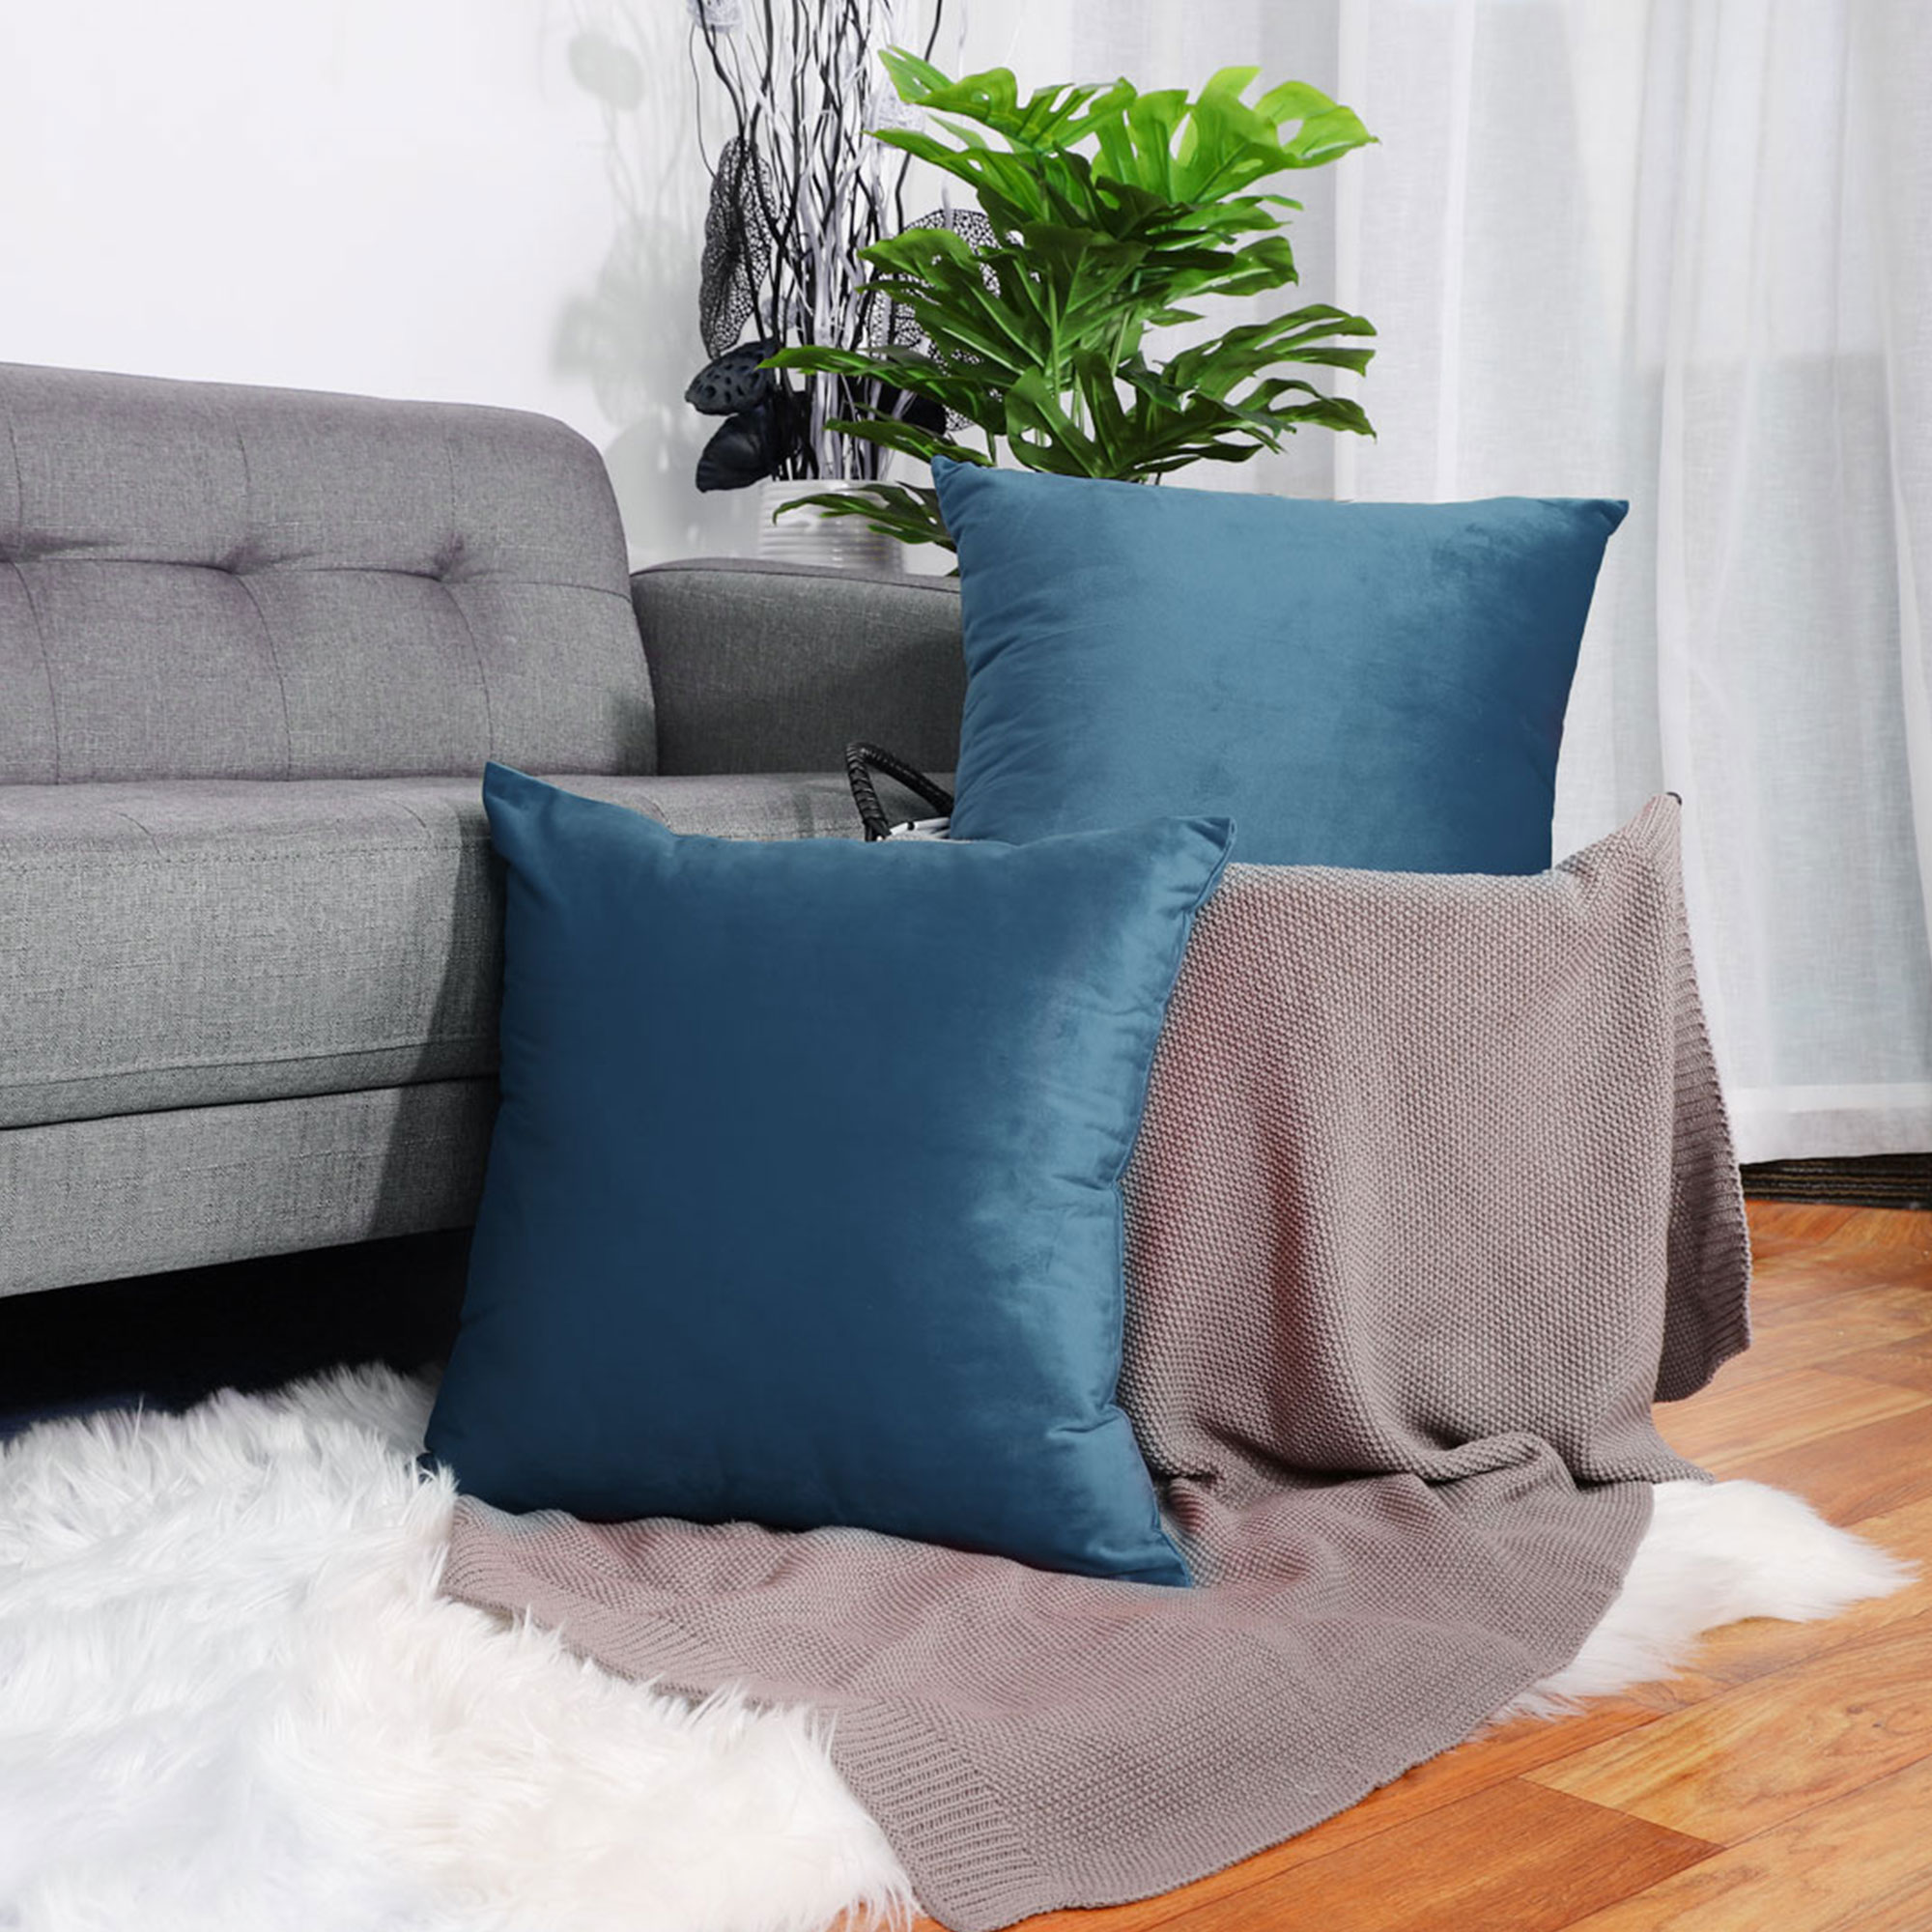 Pack Of 2 Square Euro Throw Pillow Cover Decorative